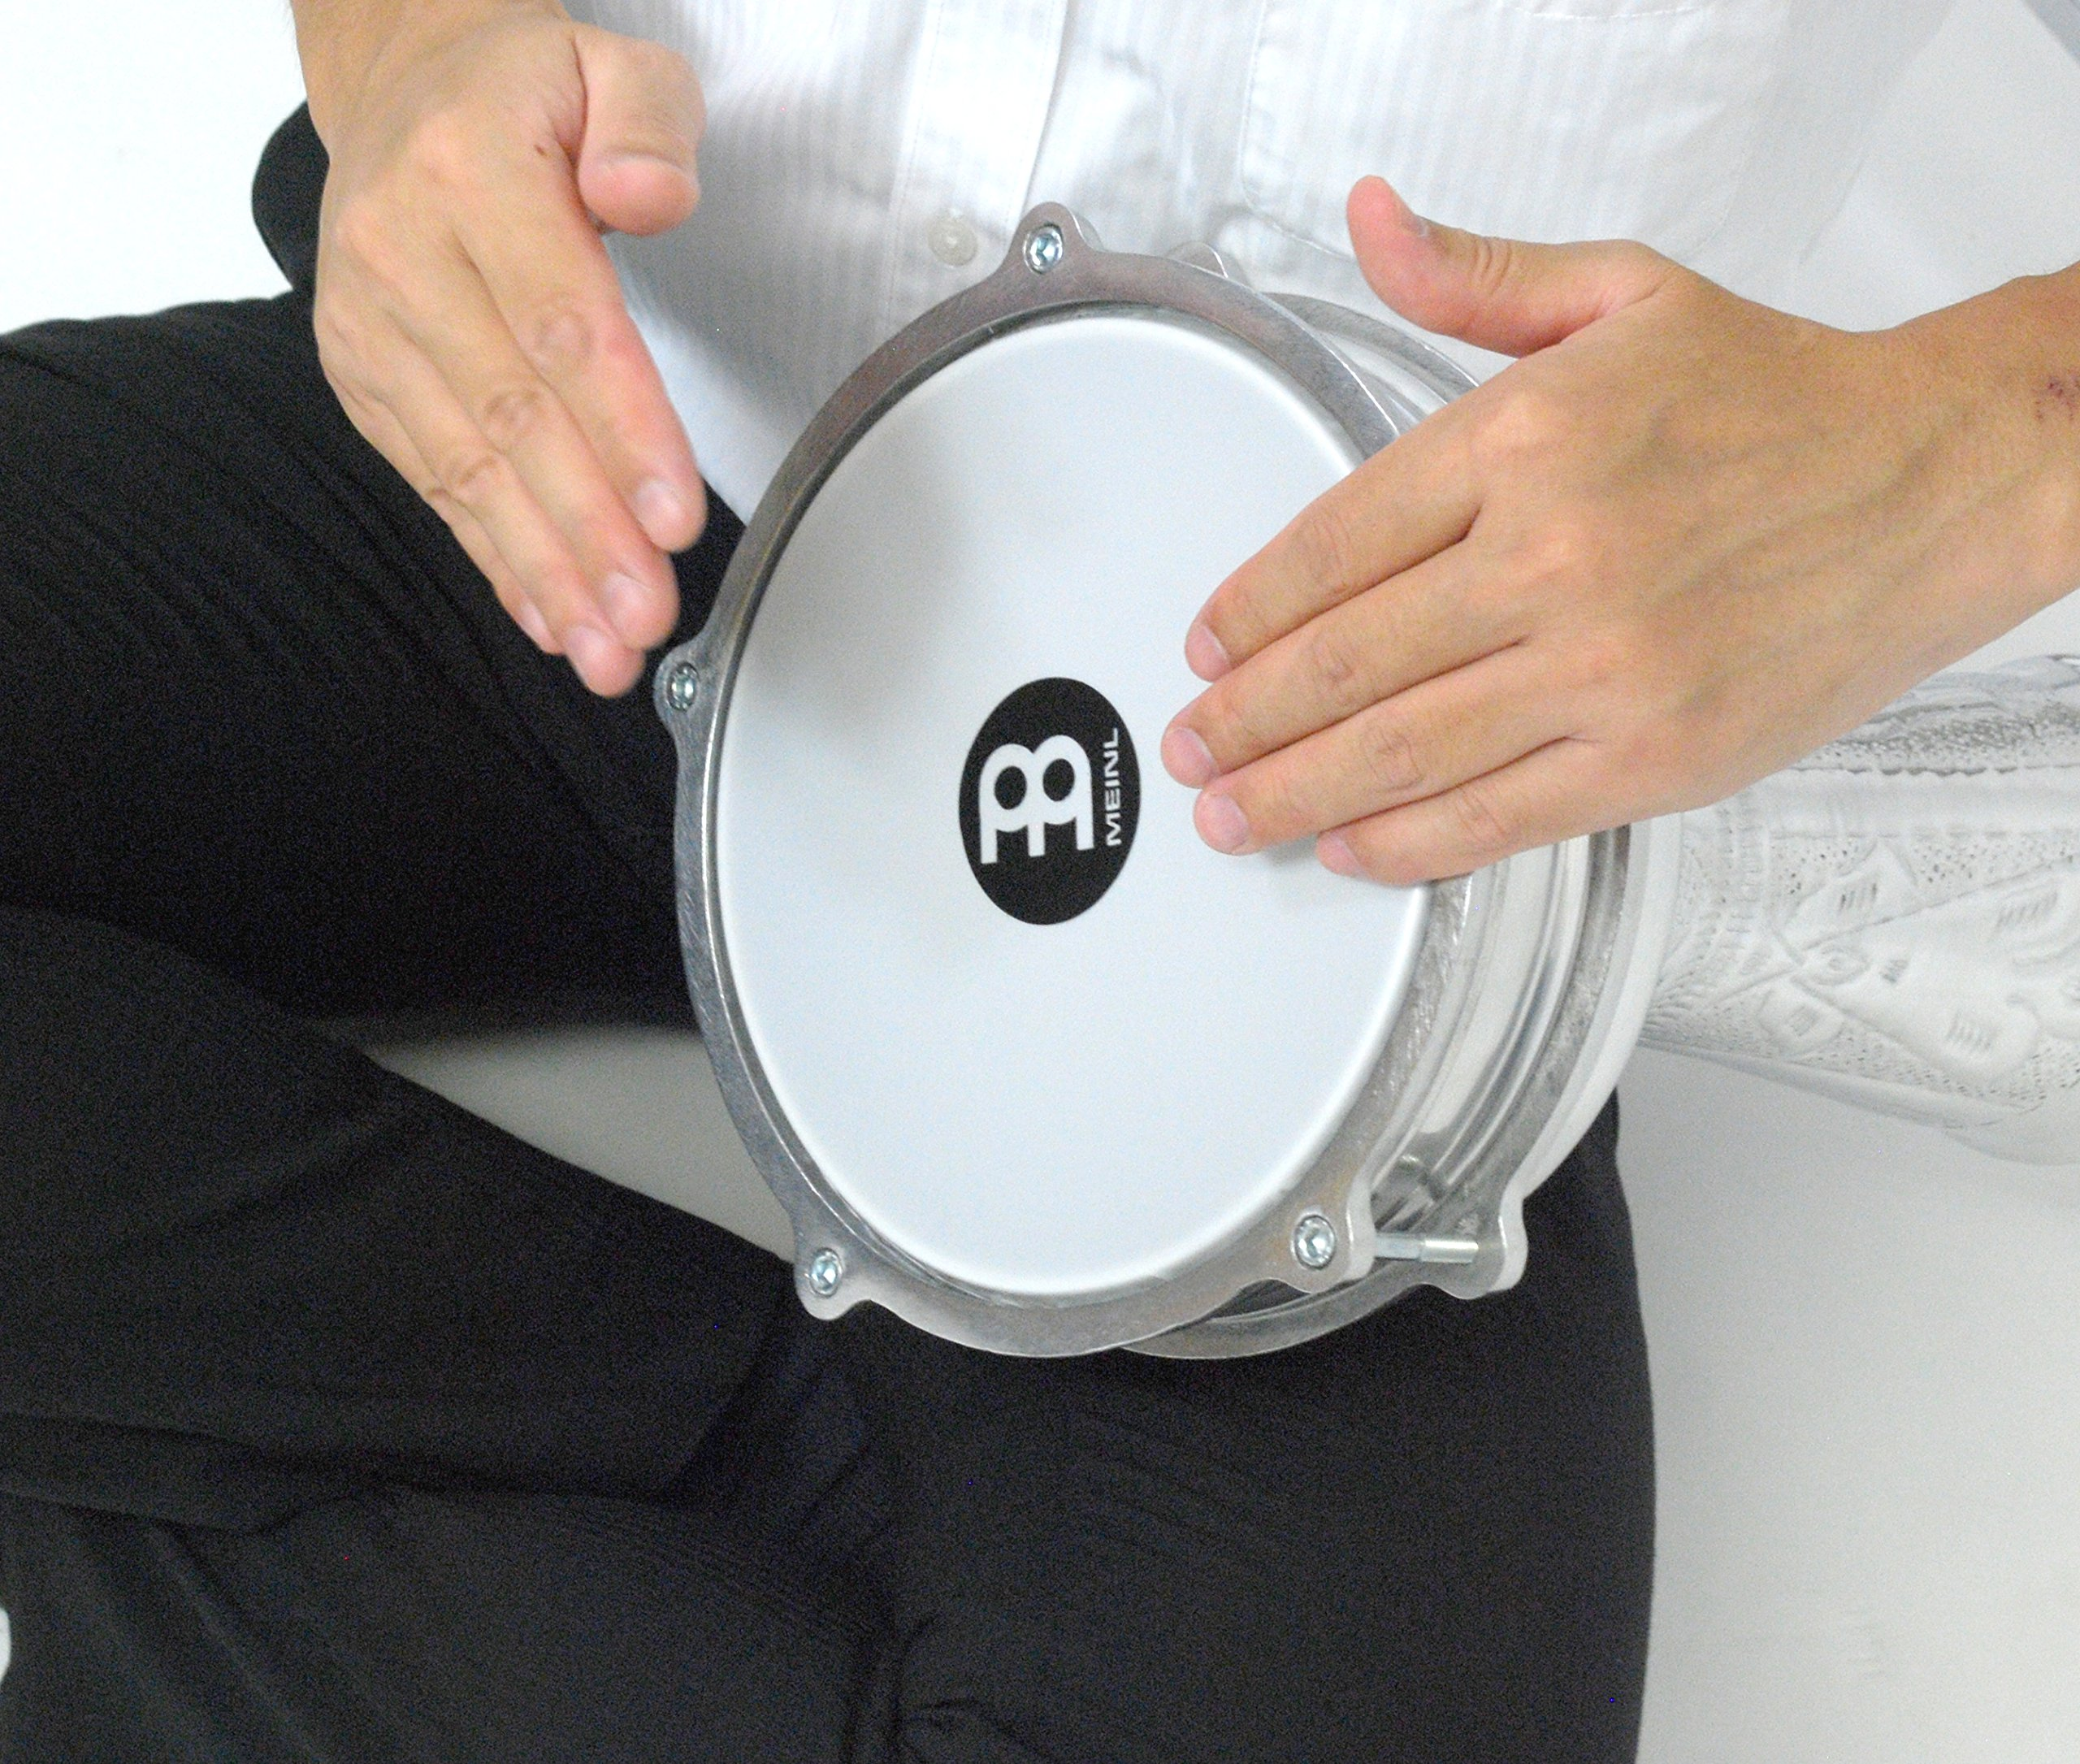 Meinl Percussion Darbuka with Hand Hammered Aluminum Shell-Made in Turkey-8'' Tunable Synthetic Head, 2-Year Warranty (HE-114) by Meinl Percussion (Image #3)